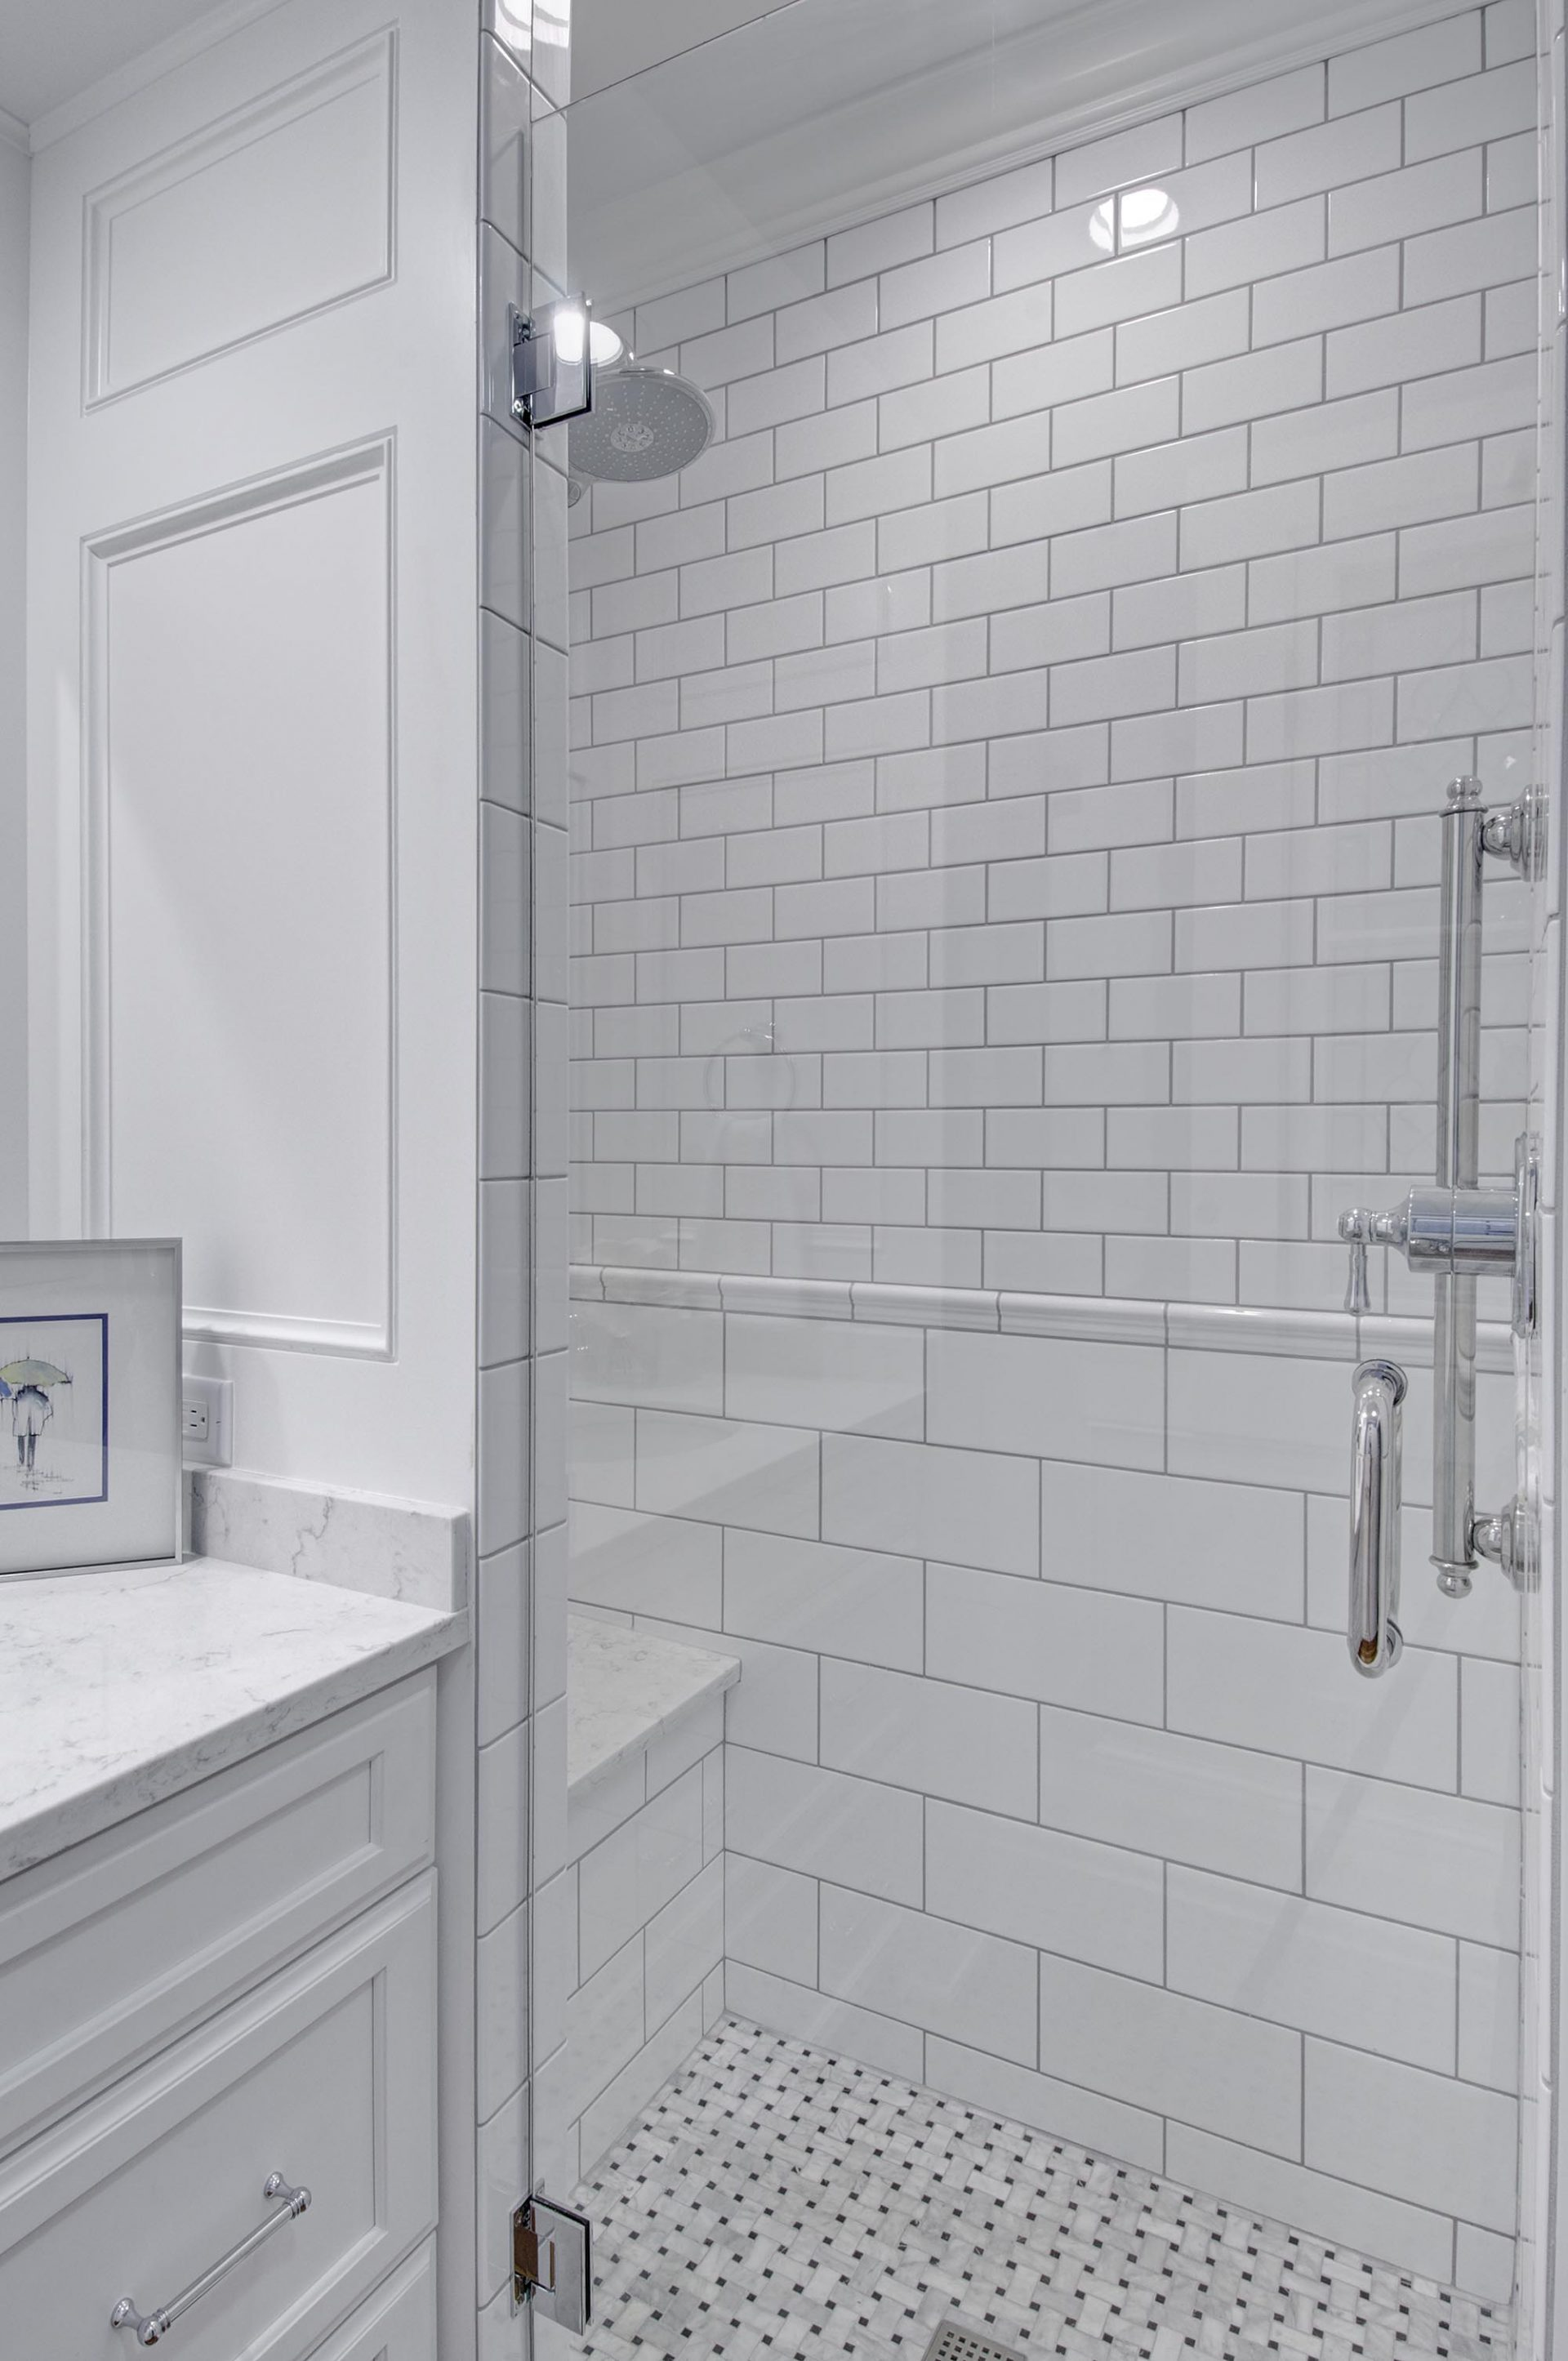 Bath, German Village, Dave Fox, Remodel, subway tile, shower bench, wainscoting